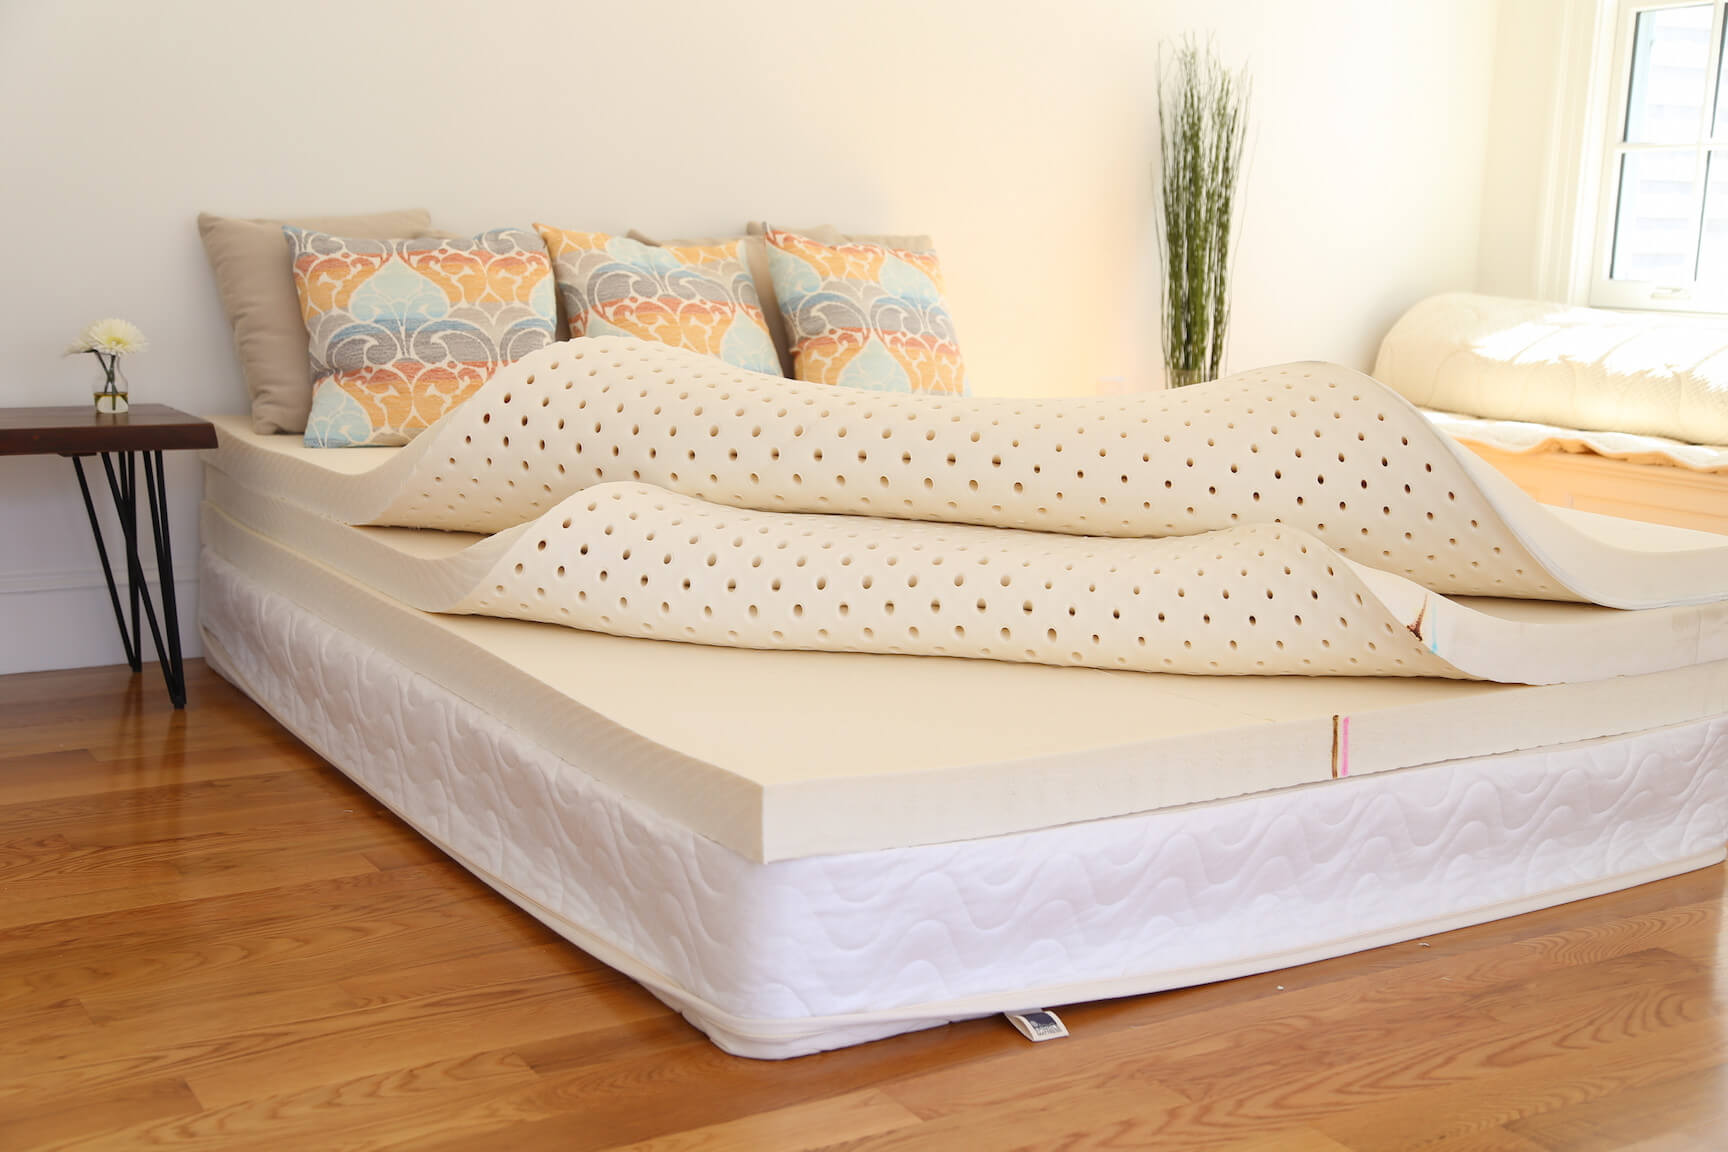 Spindle Mattress Review - All natural latex foam mattress - girl on the mattress